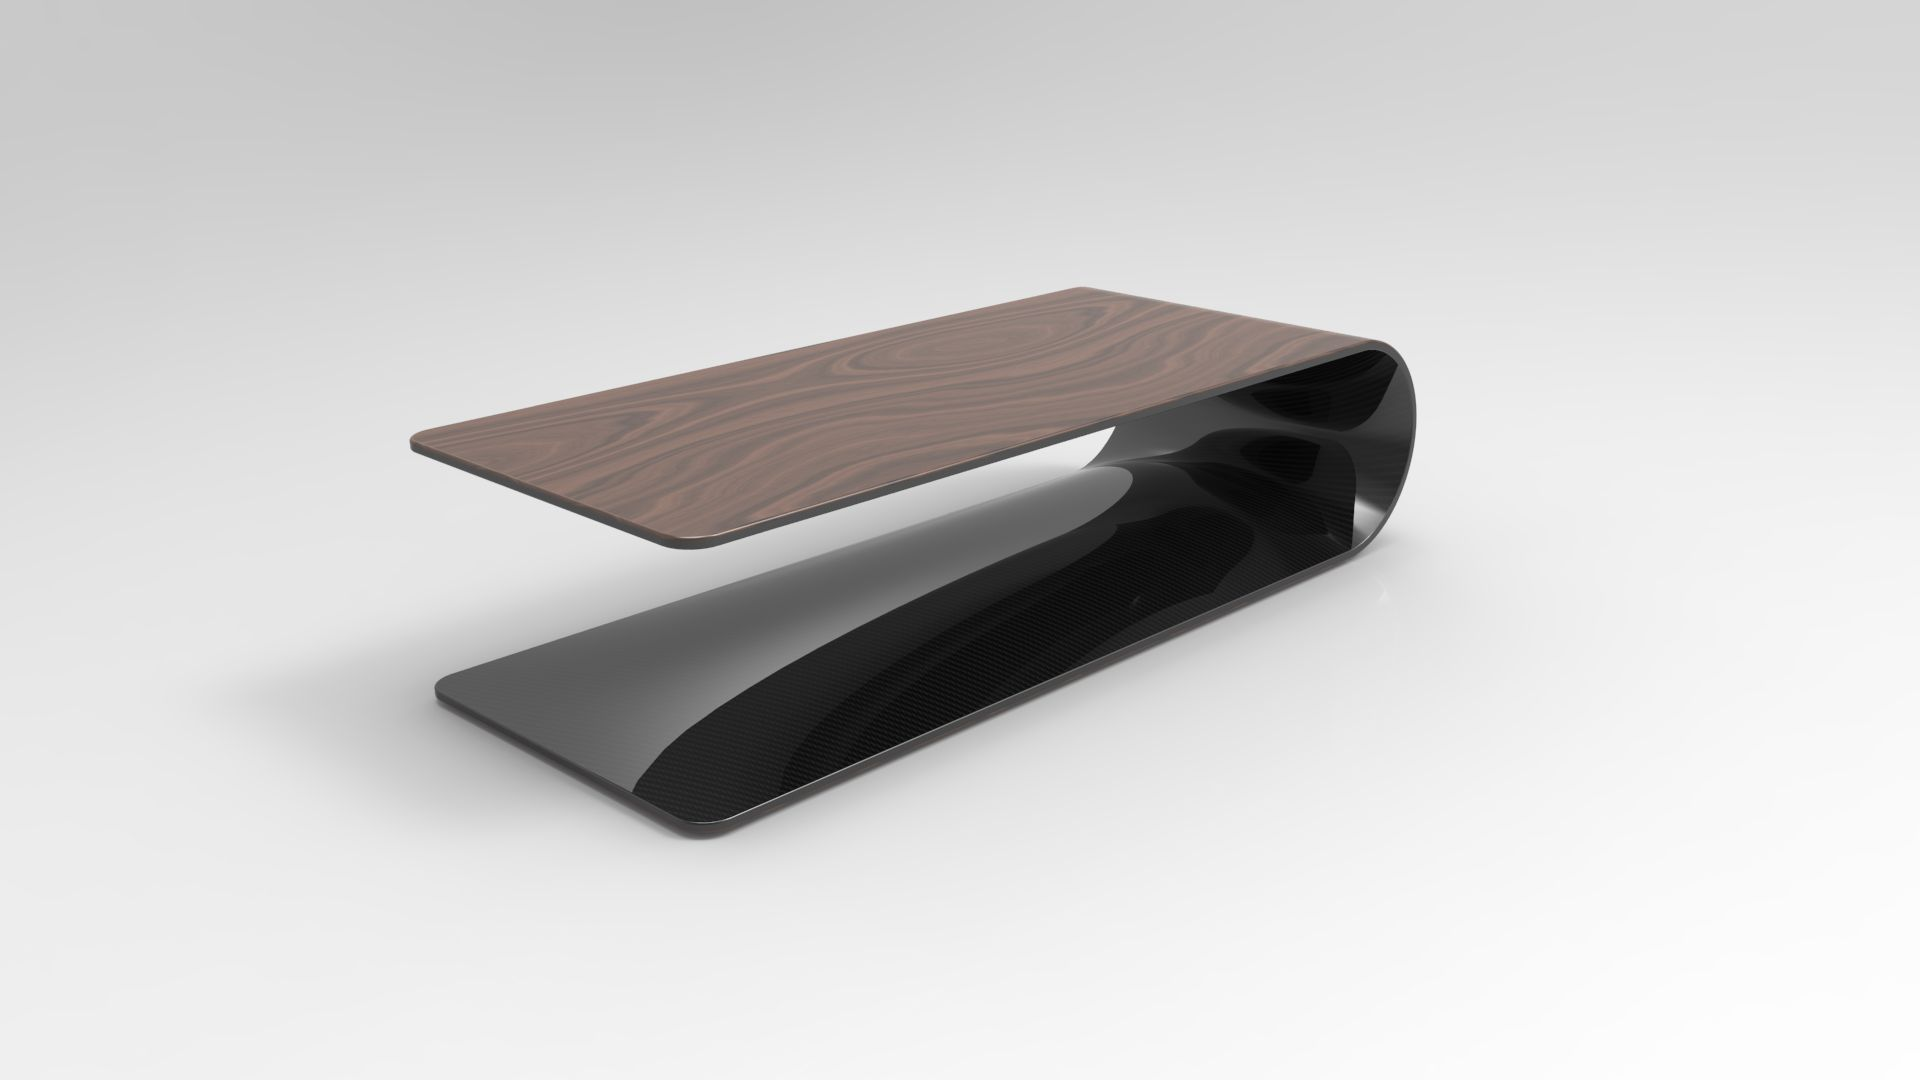 BOOMERANG. Low table or side table made of carbon fiber, Kevlar and structural foam. Veneer on the outside, transparent painted carbon fiber inside.